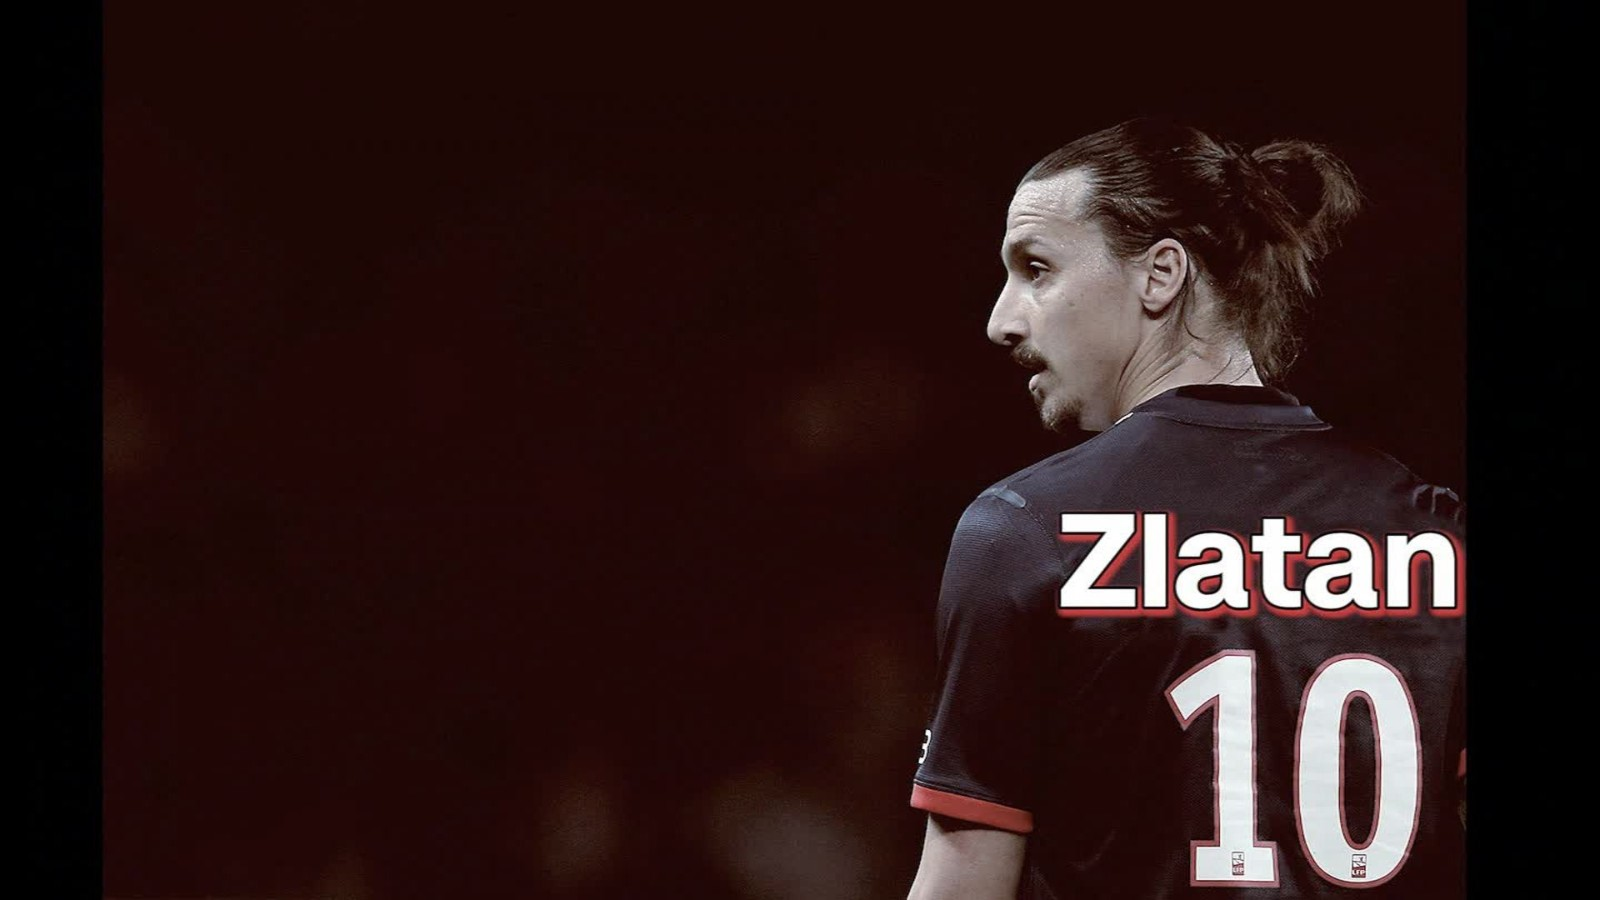 Zlatan Ibrahimovic Being the number one is difficult CNN